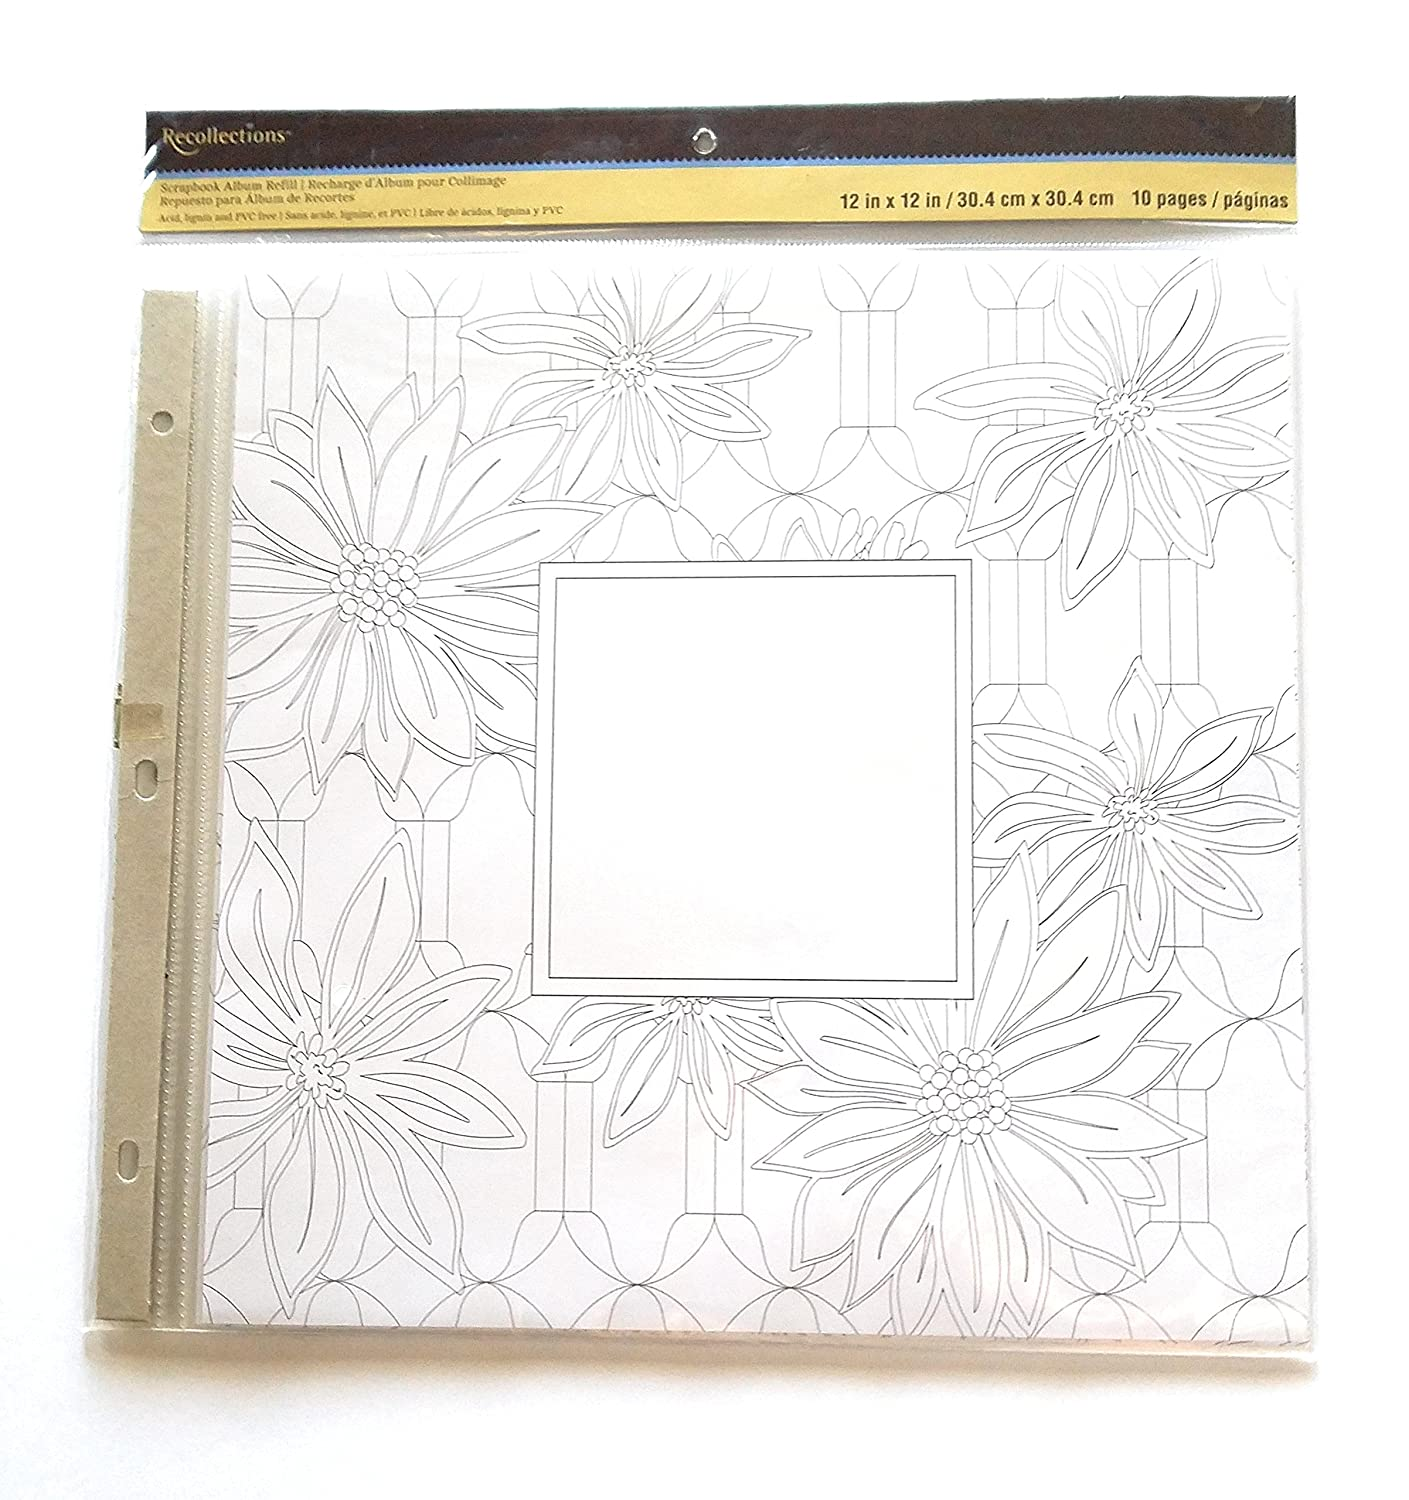 Recollections 10-Sheets Scrapbook Album Refill Pages 12x12 (2 Pack)